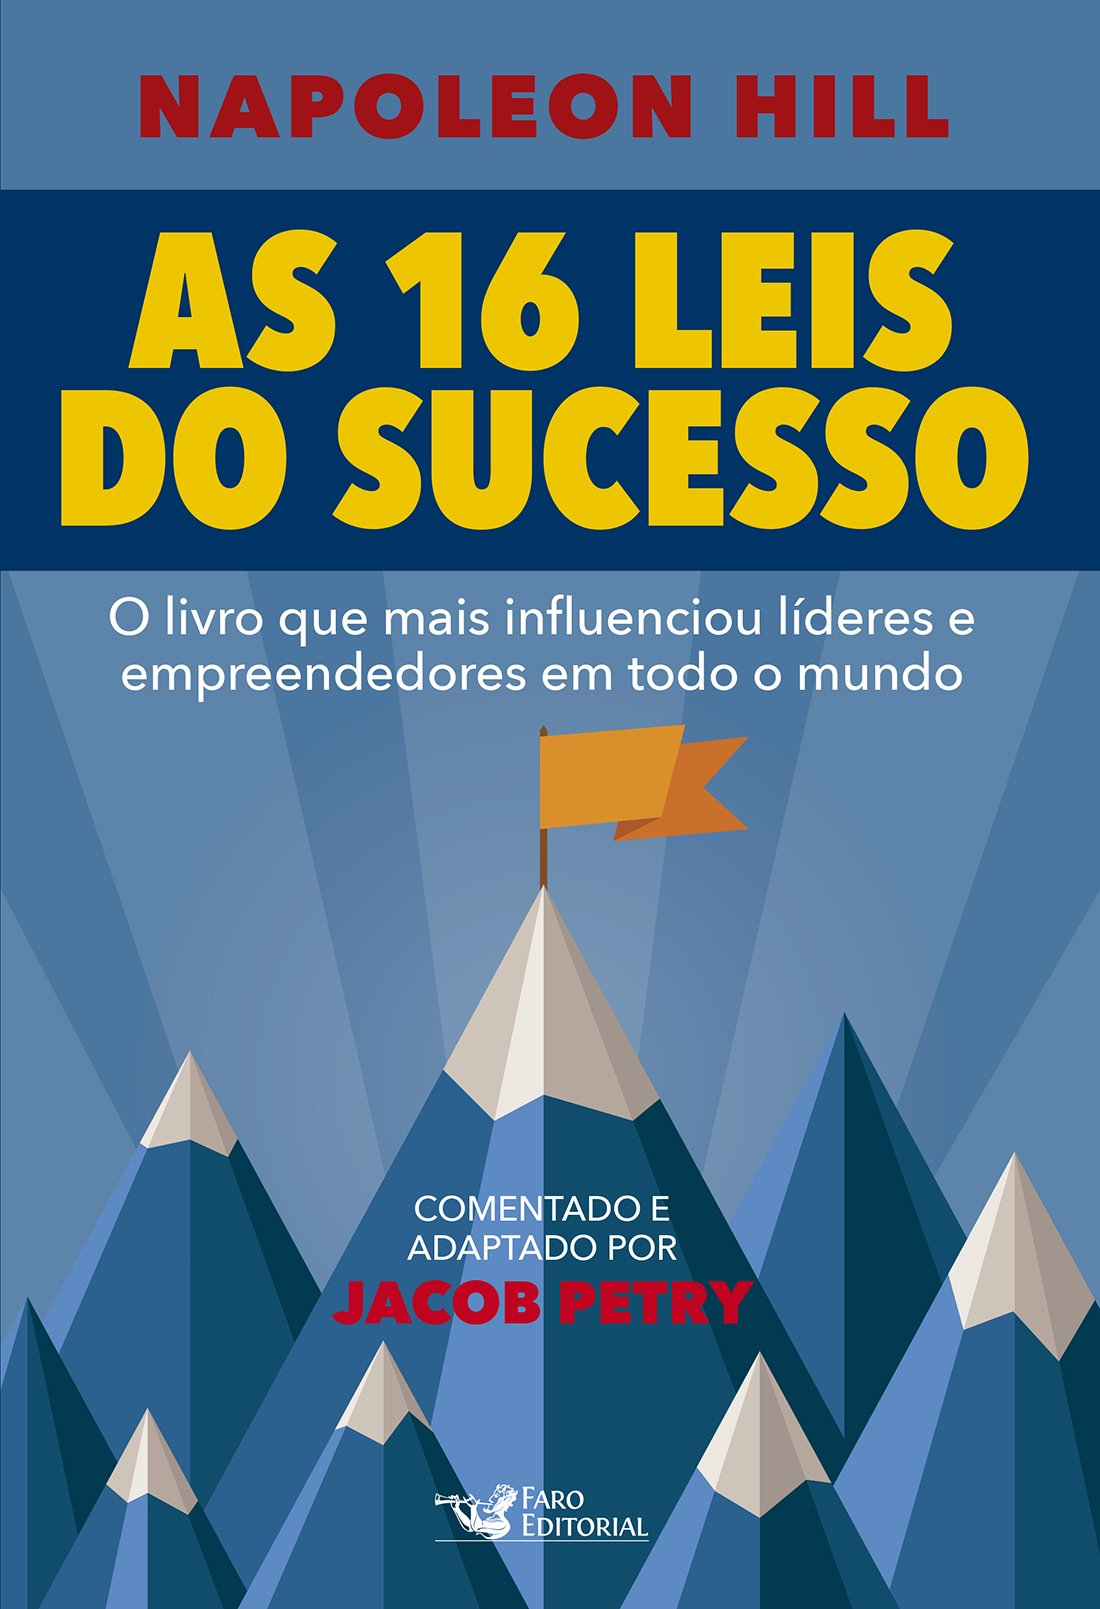 As 16 Leis do Sucesso Napoleon Hill PDF Jacob Petry